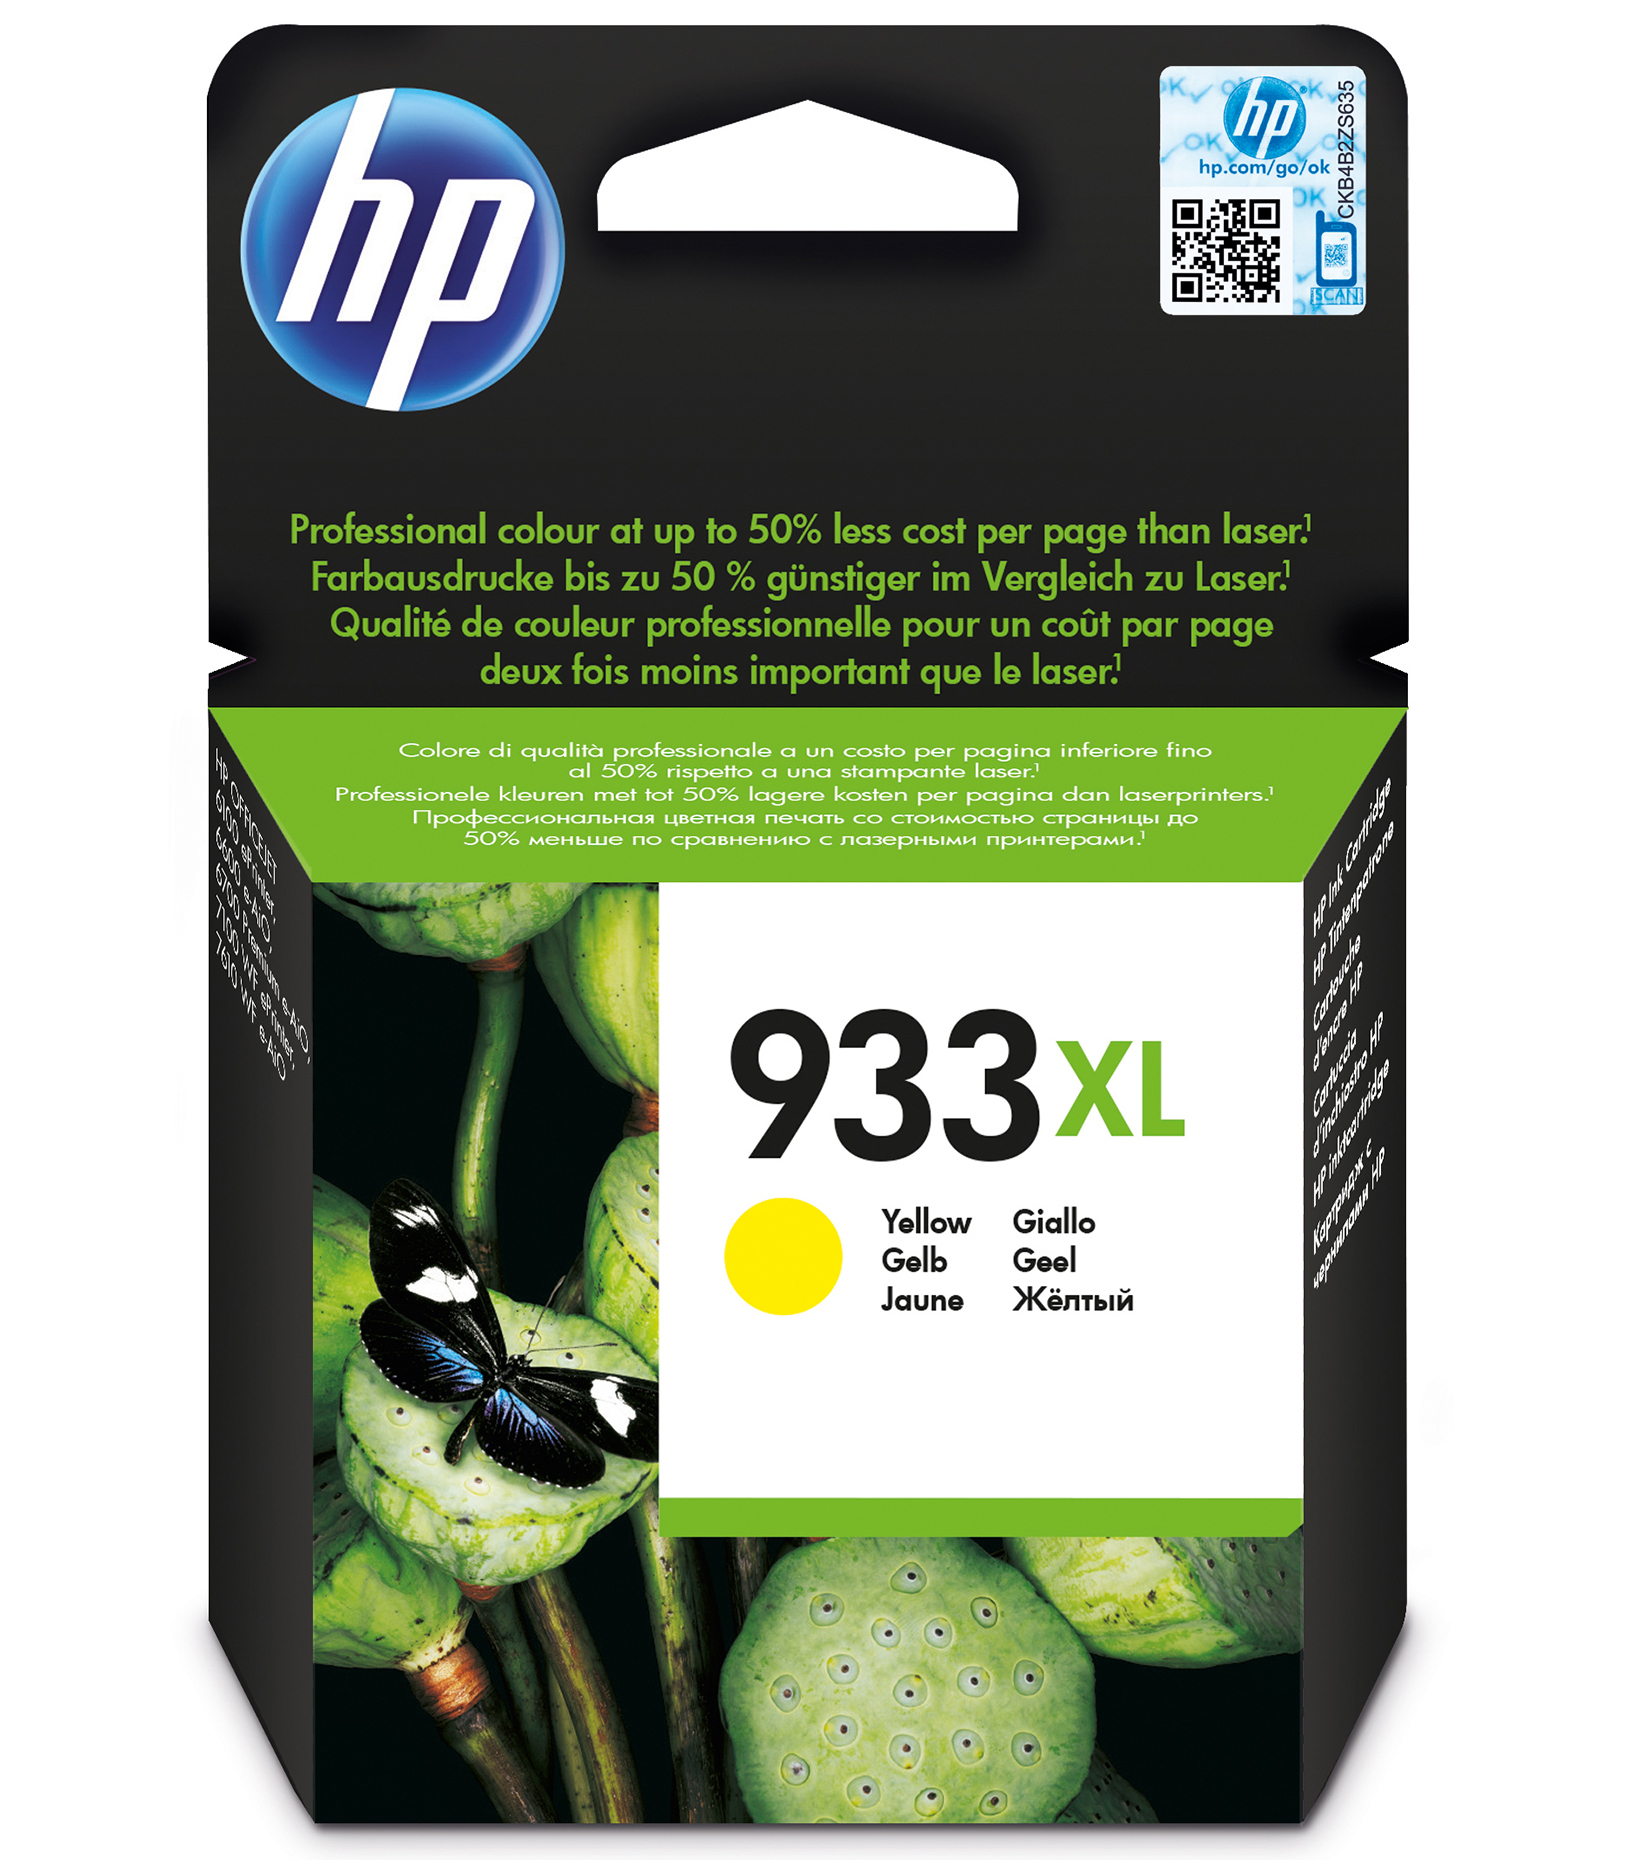 Remanufactured HP CN056AE (933XL) Yellow Ink Cartridge 0k825 CN056AE - rem01